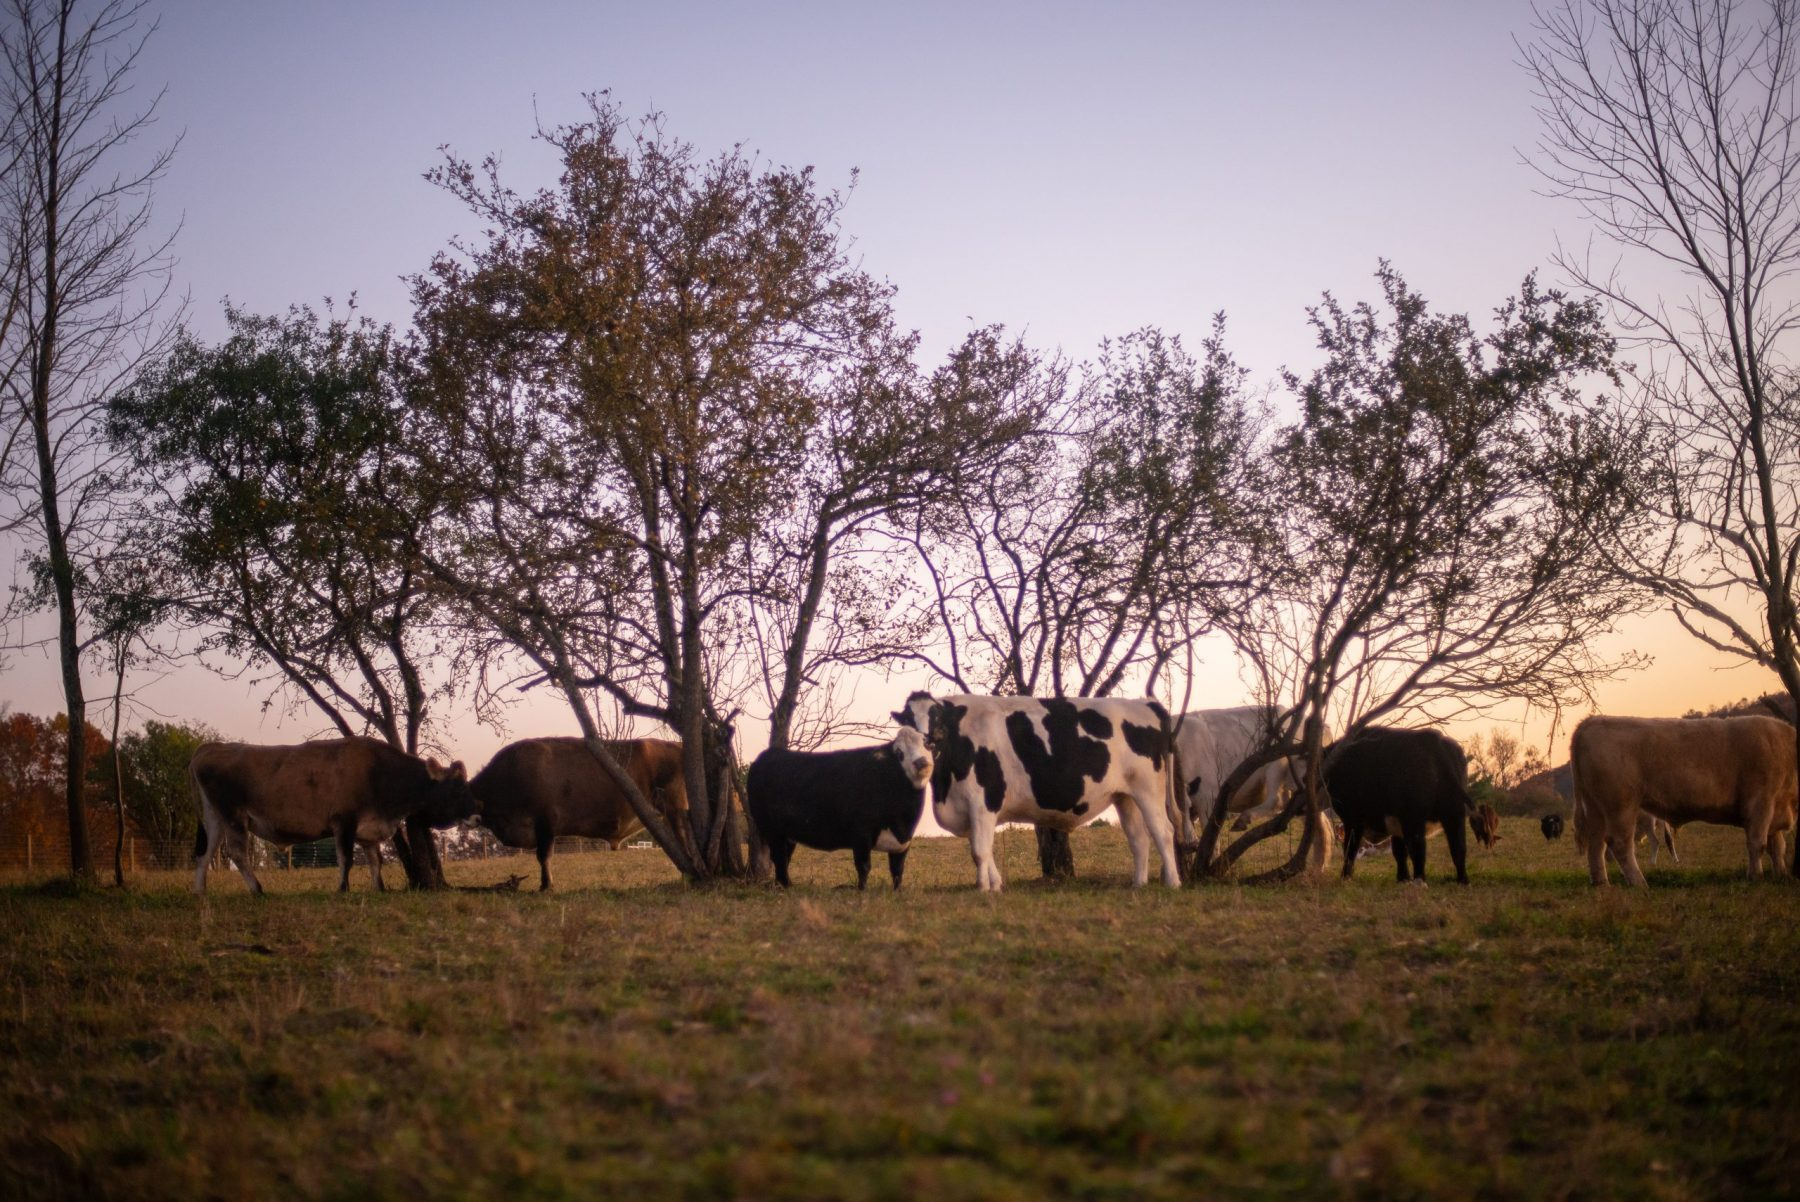 Main cattle herd at sunset at Farm Sanctuary